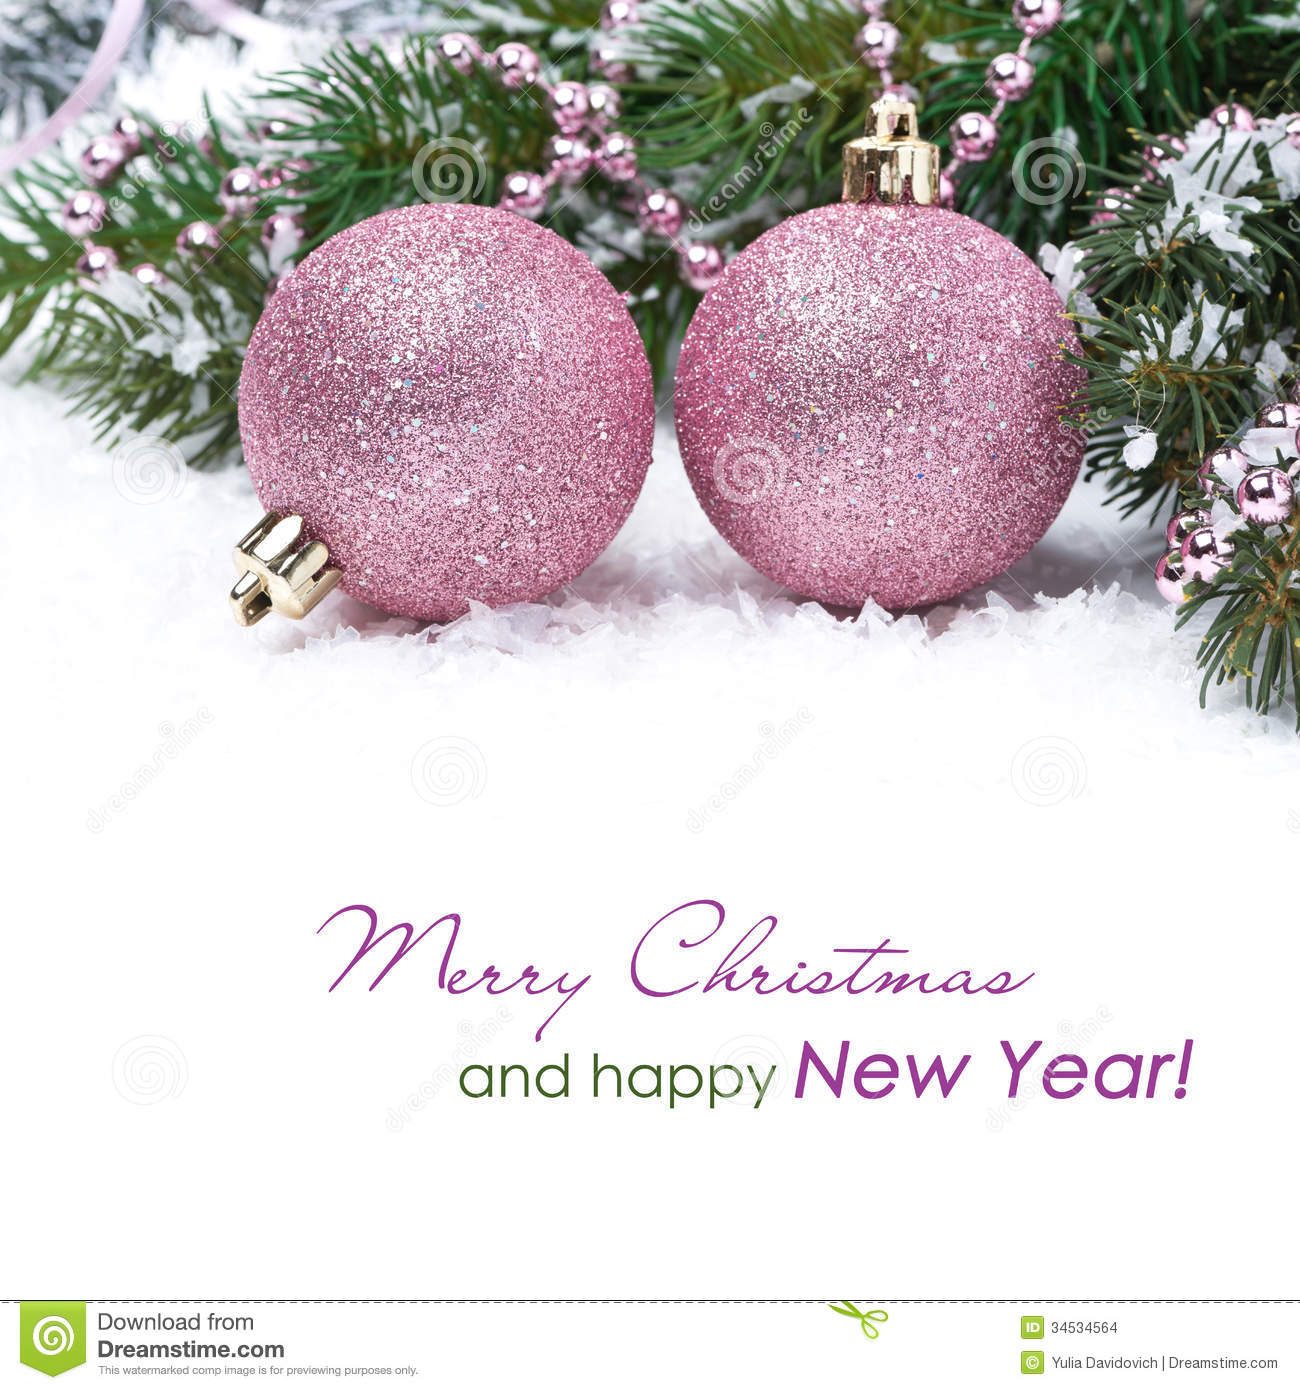 Christmas Card With Pink Baubles Stock Photo - Image of 2014, pink ...